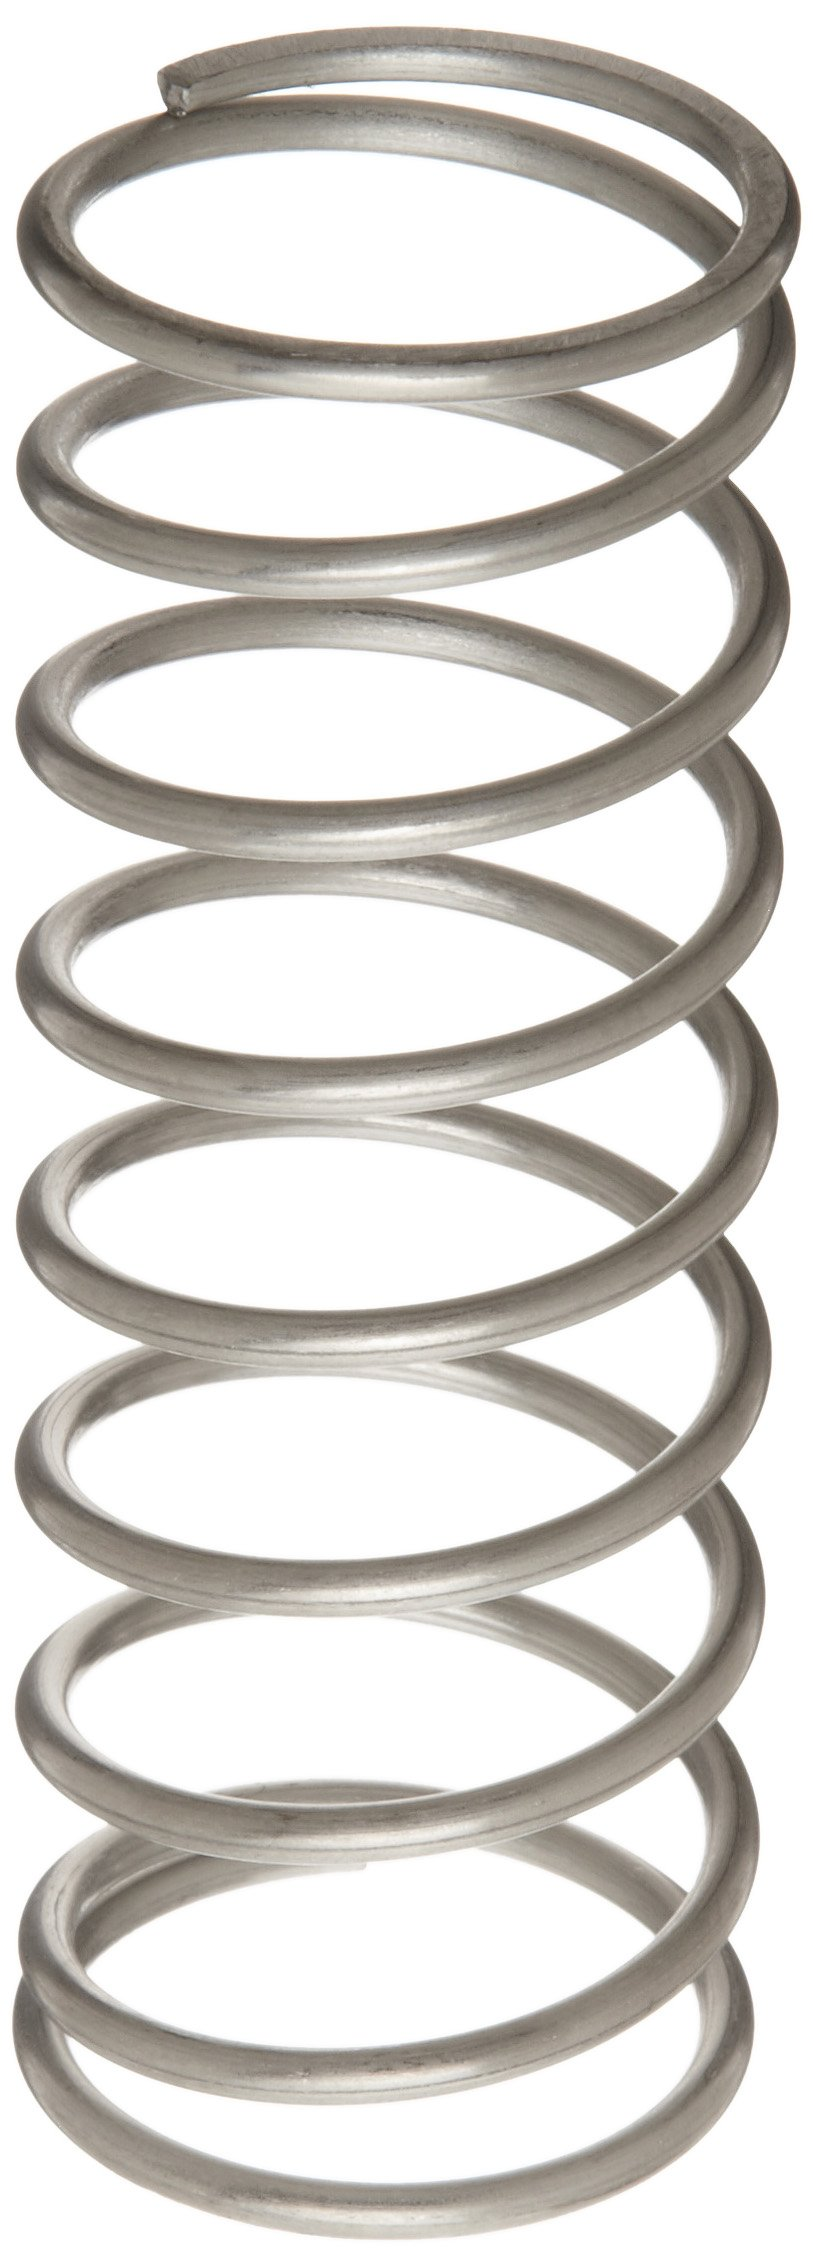 0.24 OD Extension Spring 302 Stainless Steel 2.67 lbs//in Spring Rate Inch Pack of 10 0.24 OD 0.034 Wire Size 2.75 Free Length 4.74 Extended Length E02400342750S 5.83 lbs Load Capacity 4.74 Extended Length 0.034 Wire Size 2.75 Free Length